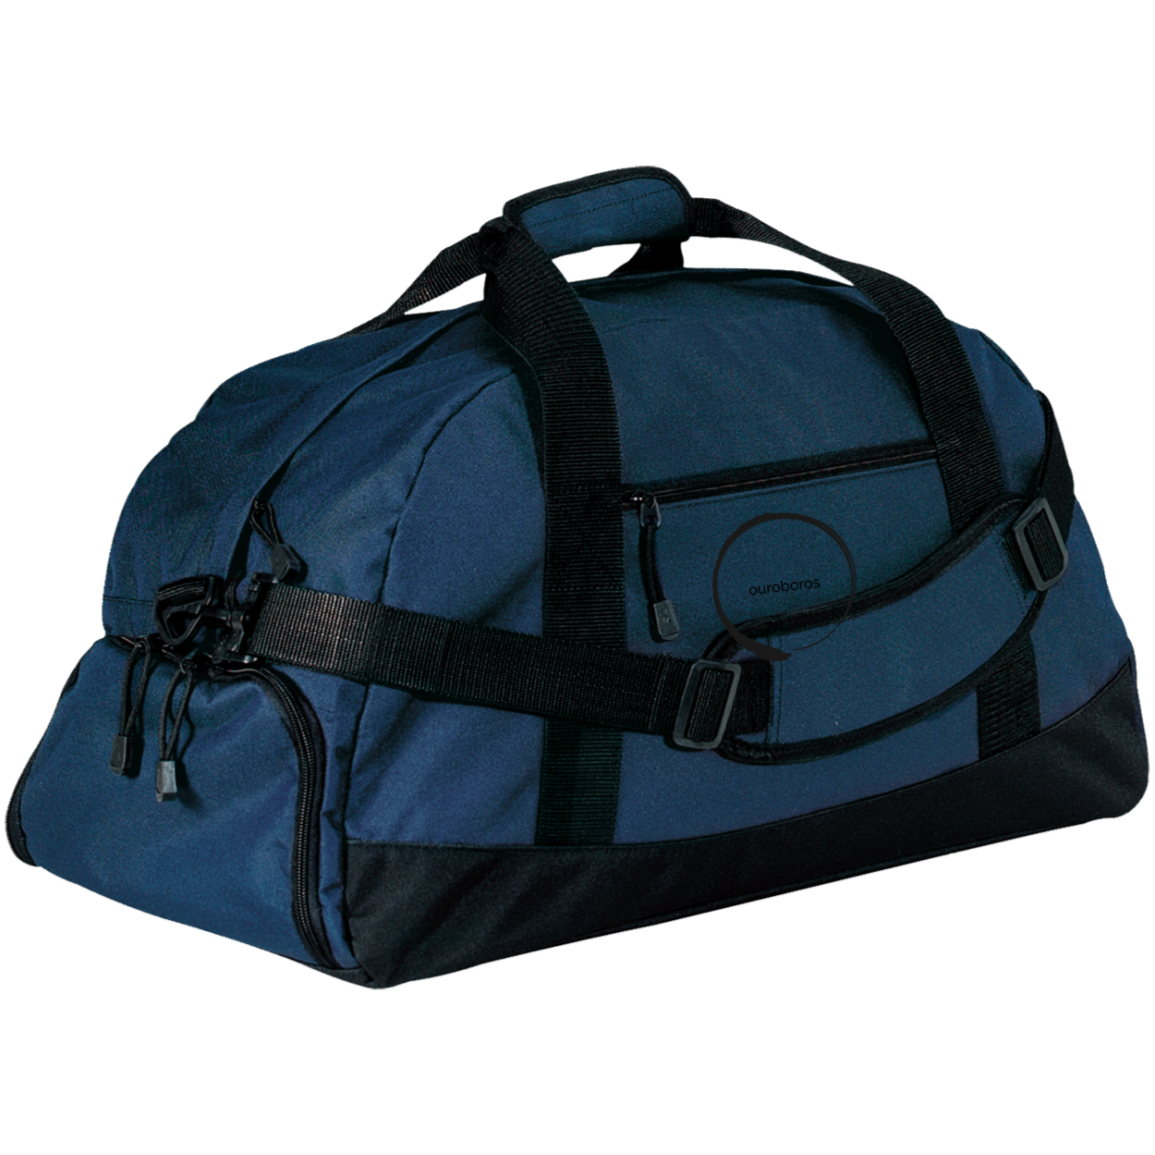 Ouroboros Basic Large-Sized Duffel Bag